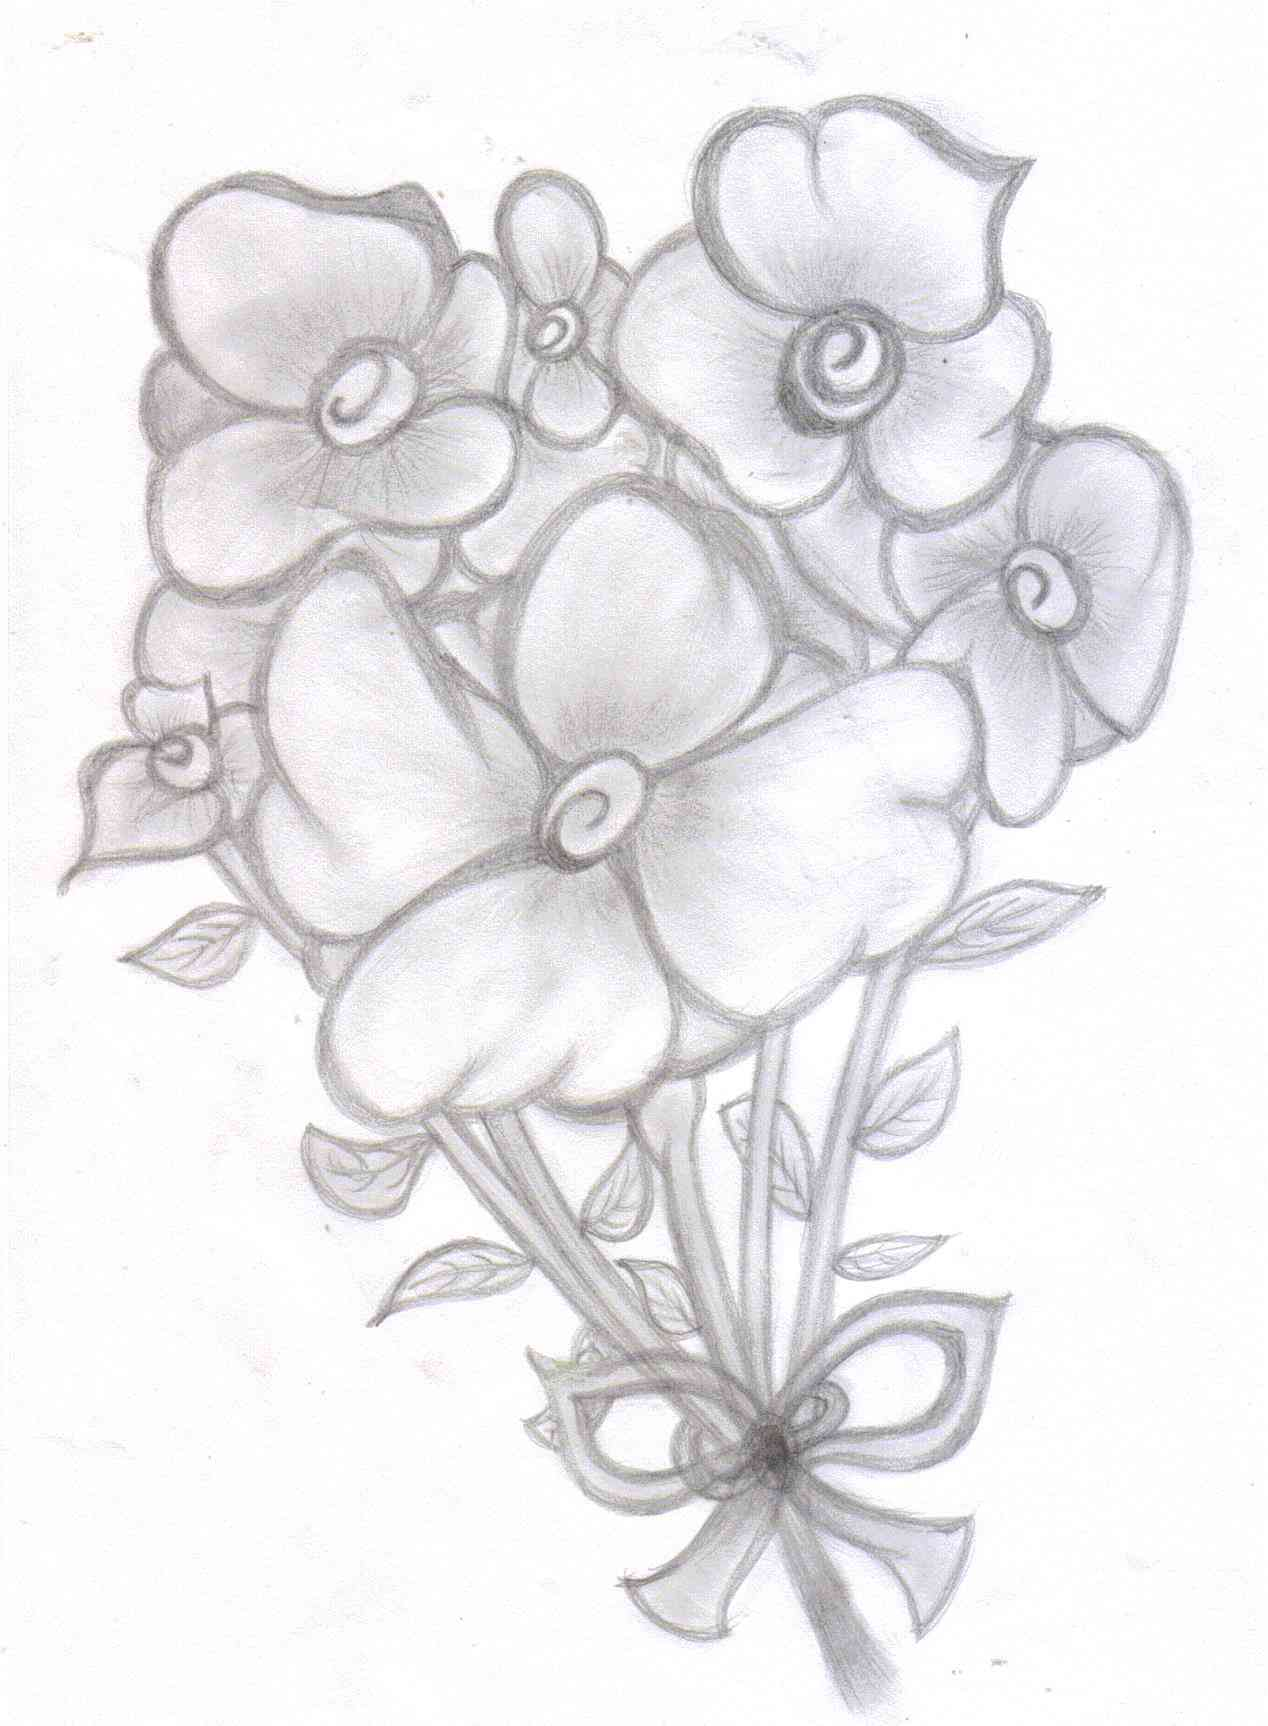 1268x1726 pin drawn flower flower bunch 1. bouquet of roses flowers drawing